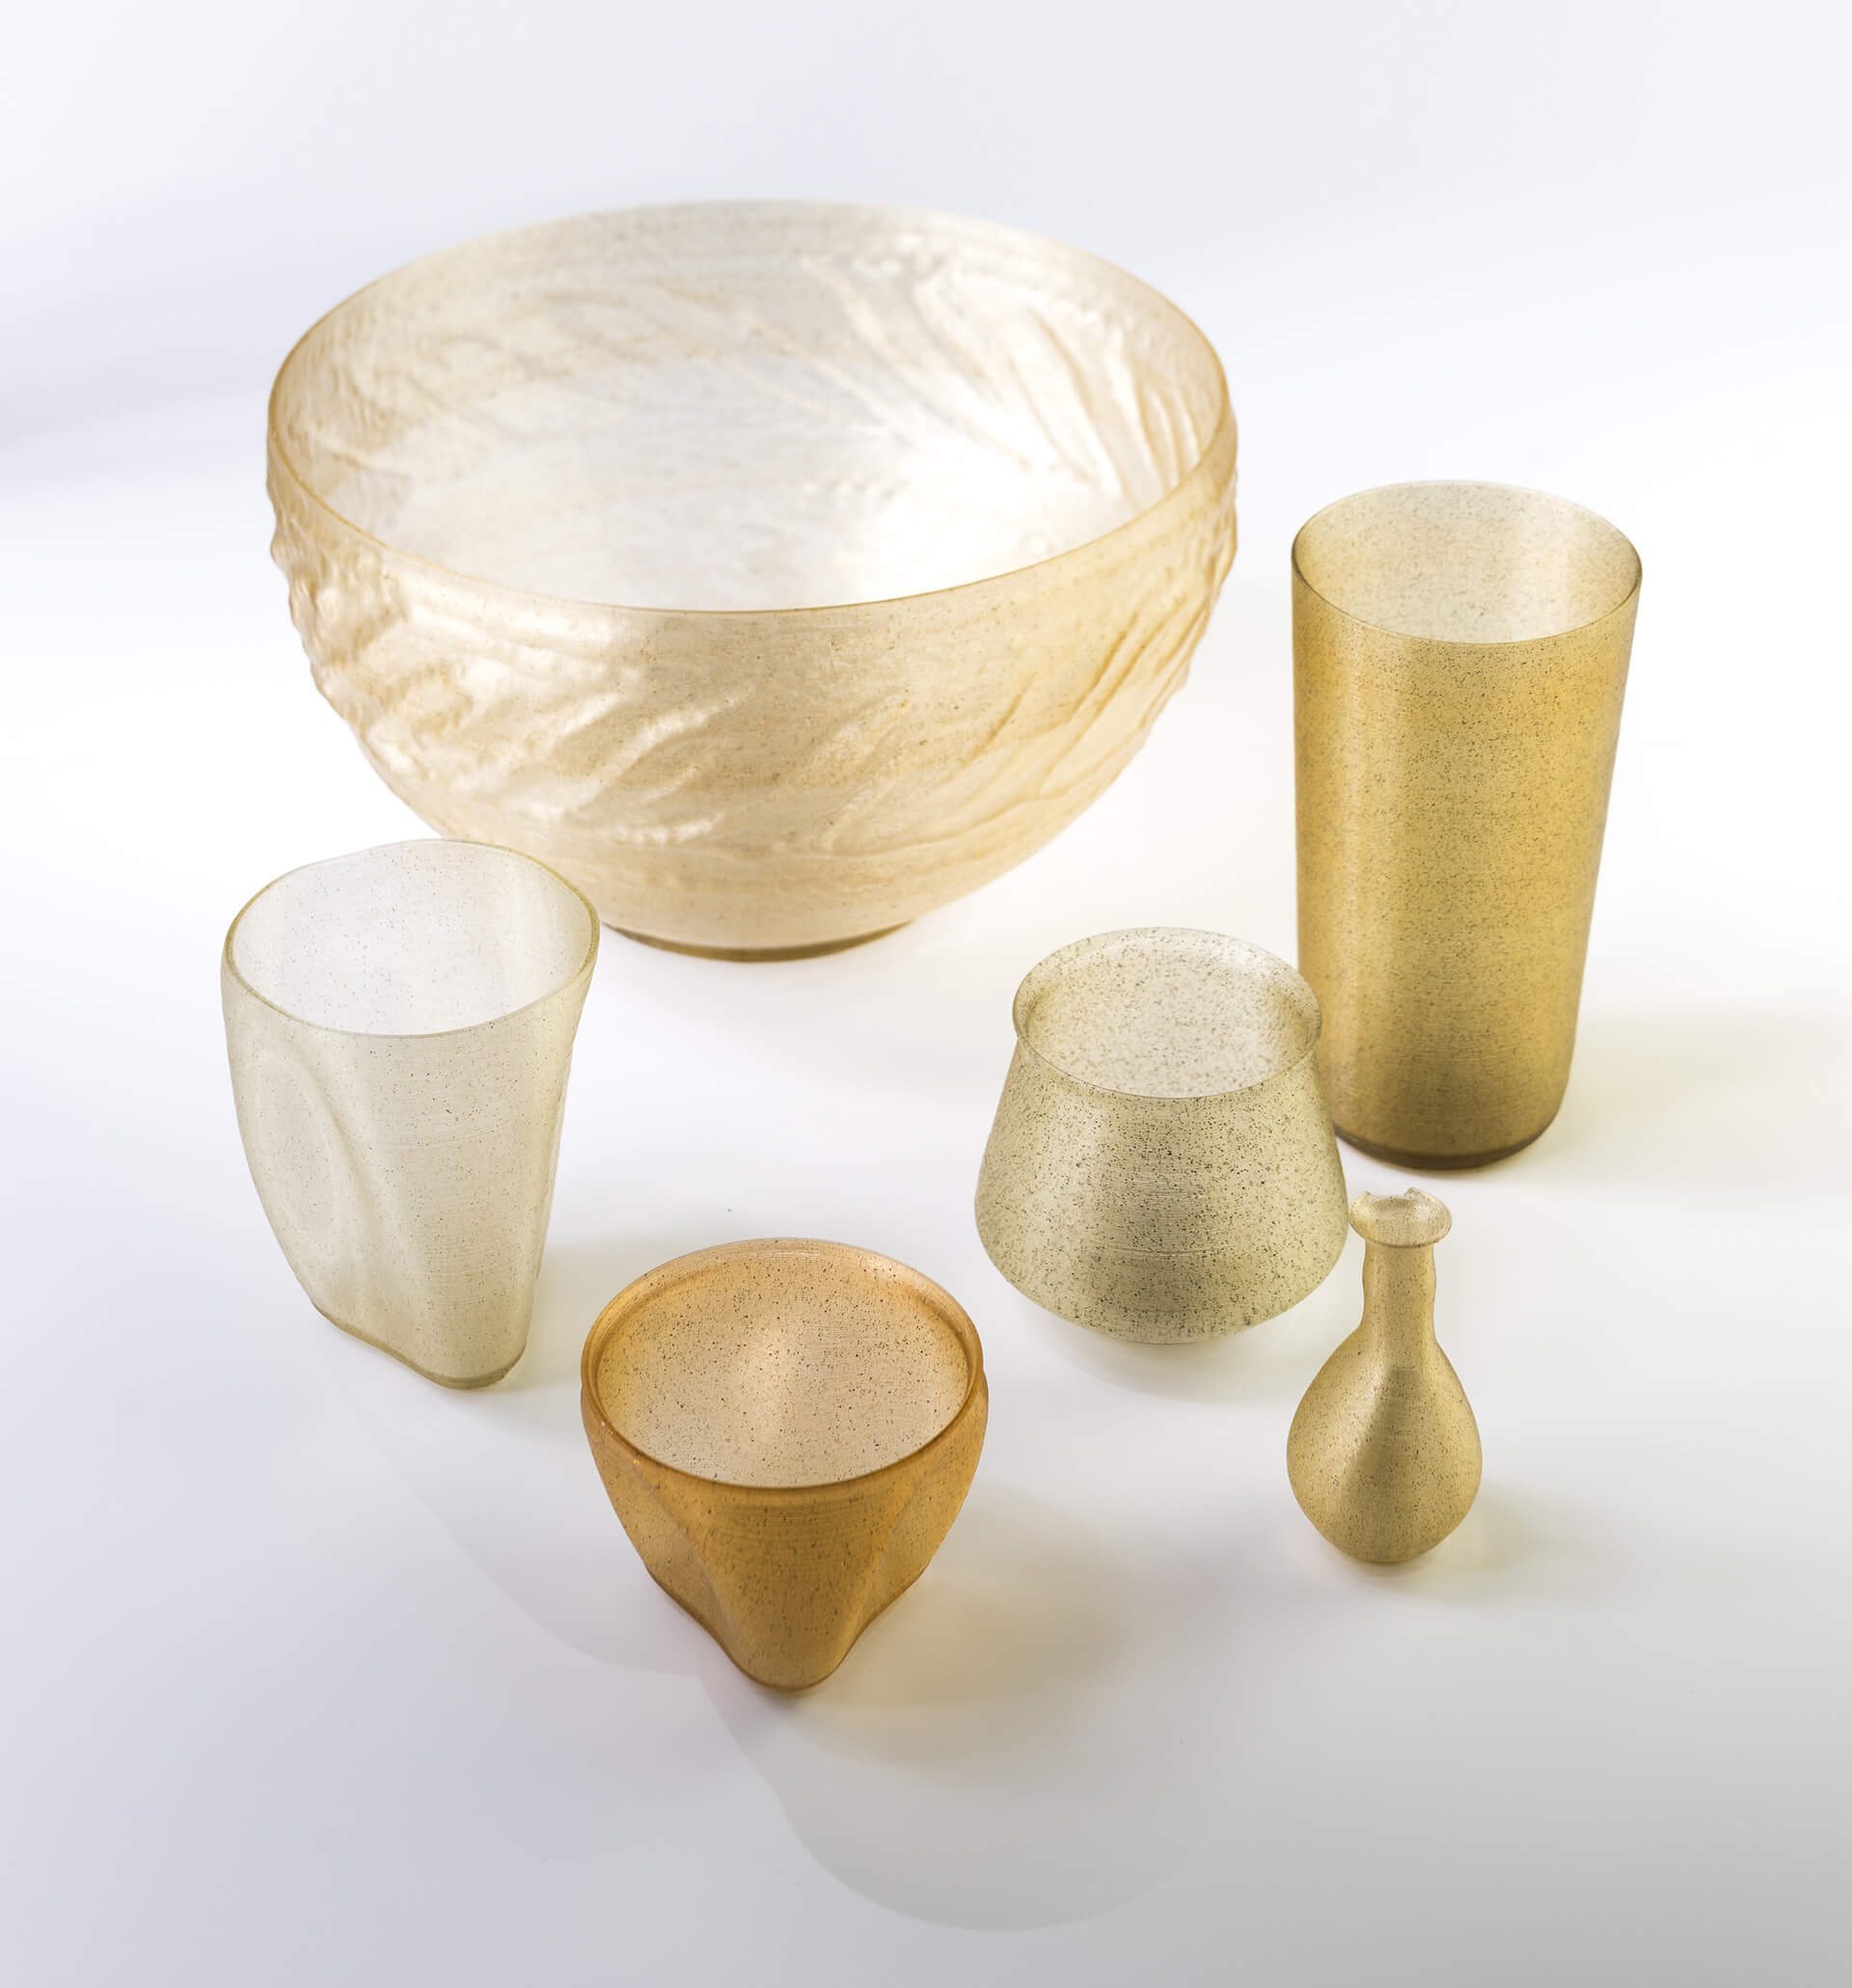 Tableware made from Bioplastic | Made in the Netherlands: Curated by Wendy Plomp | STIRworld